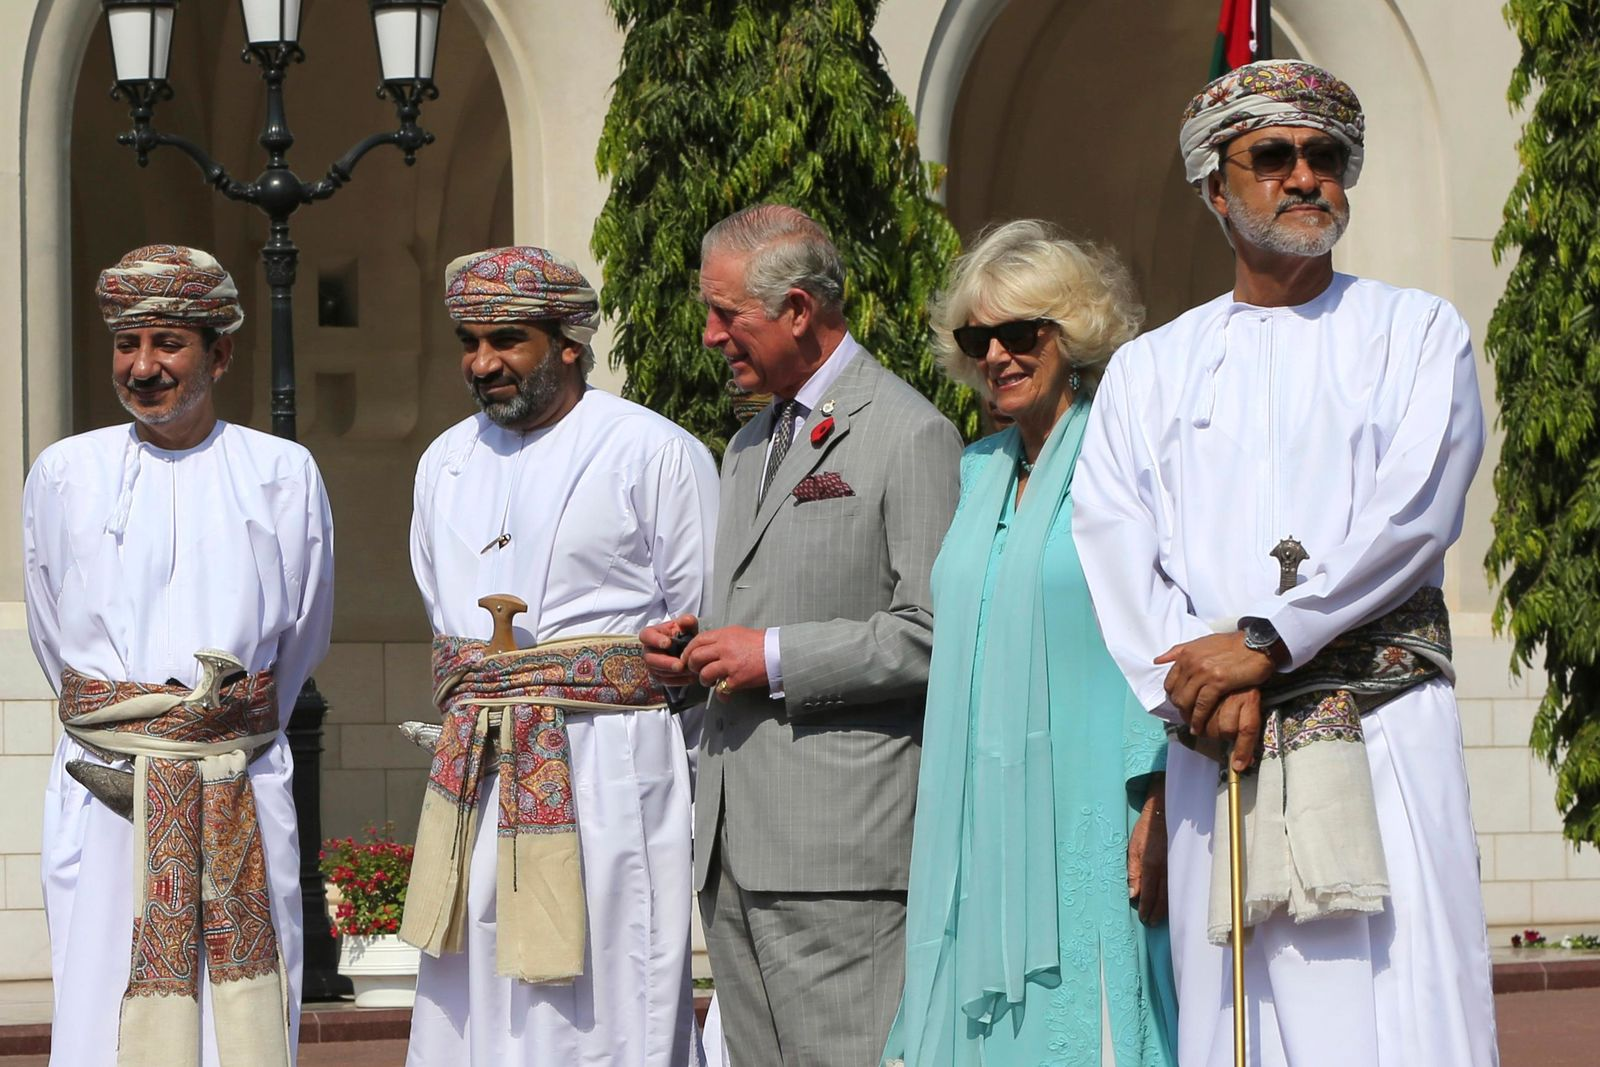 In this Nov. 5, 2016, photo, Oman's new sultan, Haitham bin Tariq Al Said, is seen at far right while welcoming Britain's Prince Charles and his wife, Camilla, Duchess of Cornwall, at Bait Al Noor church in Muscat, Oman. Oman named Haitham bin Tariq Al Said as the country's new sultan on Saturday, Jan. 11, 2020. (AP Photo/Kamran Jebreili)